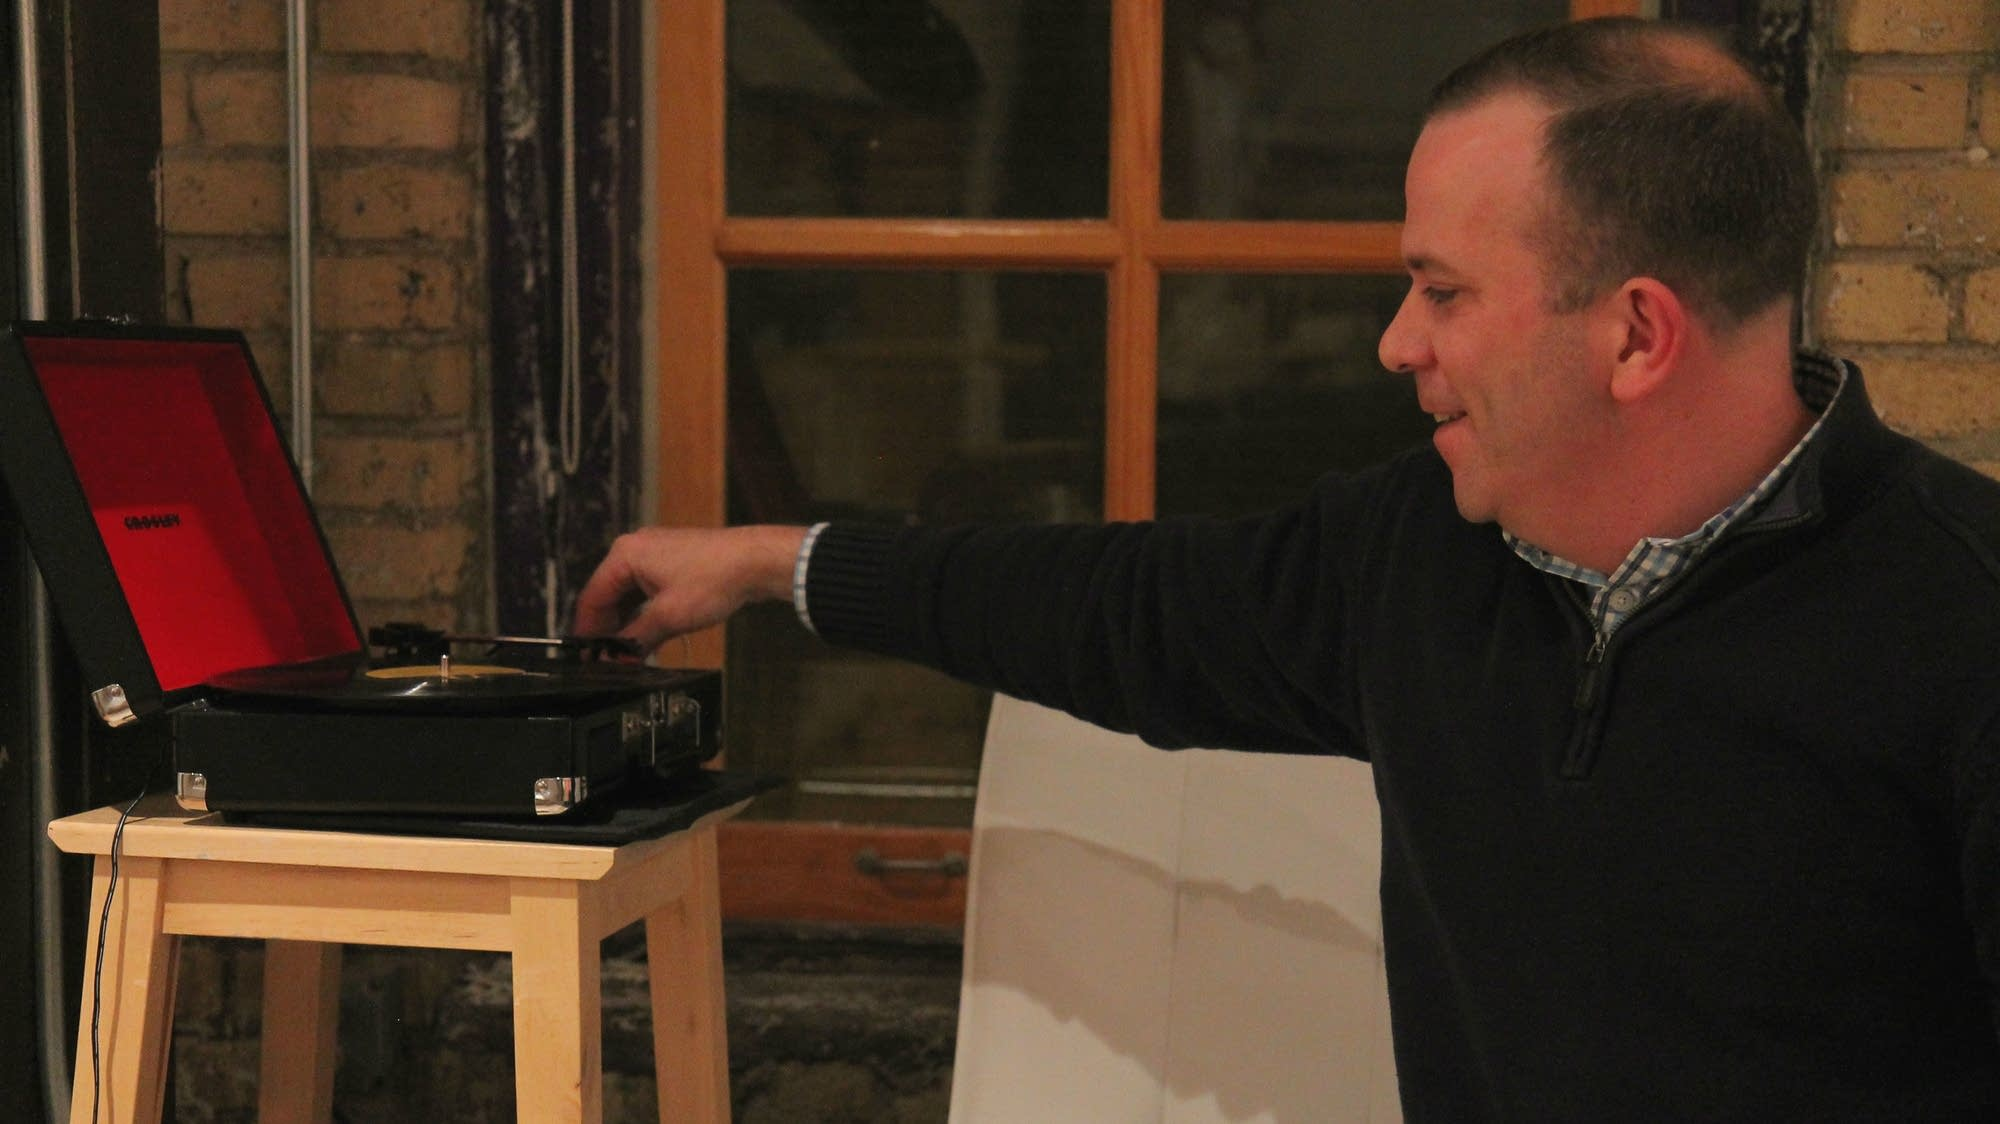 Jim O'Neill plays an LP from a vinyl collection he inherited.